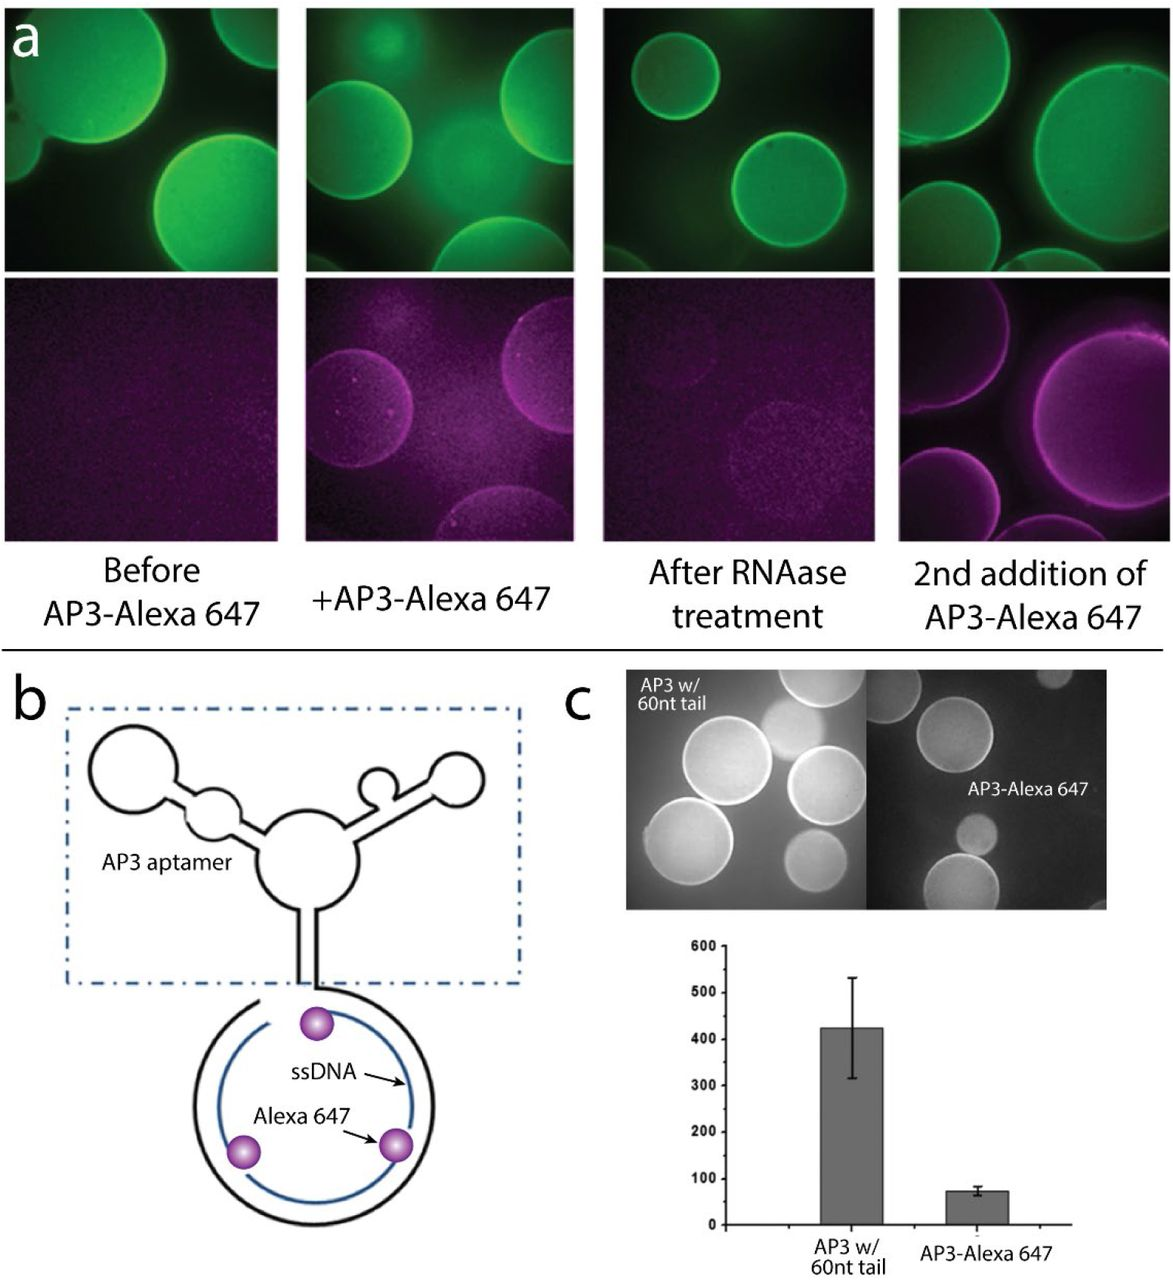 Additional unique advantages of aptamer labeling. (a) Two-rounds of sequential binding of Alexa 647 labeled AP3 on GFP beads using RNase treatment demonstrating aptamers as multiplexing reagents. (b) Left: structure of modified AP3 with 60nt linker at its 3'end that is hybridized to bind three labeled ssDNA oligos. Right: brightness comparison of beads with directly labeled AP3 and the 3X modified version (equal concentrations of AP3 were used).